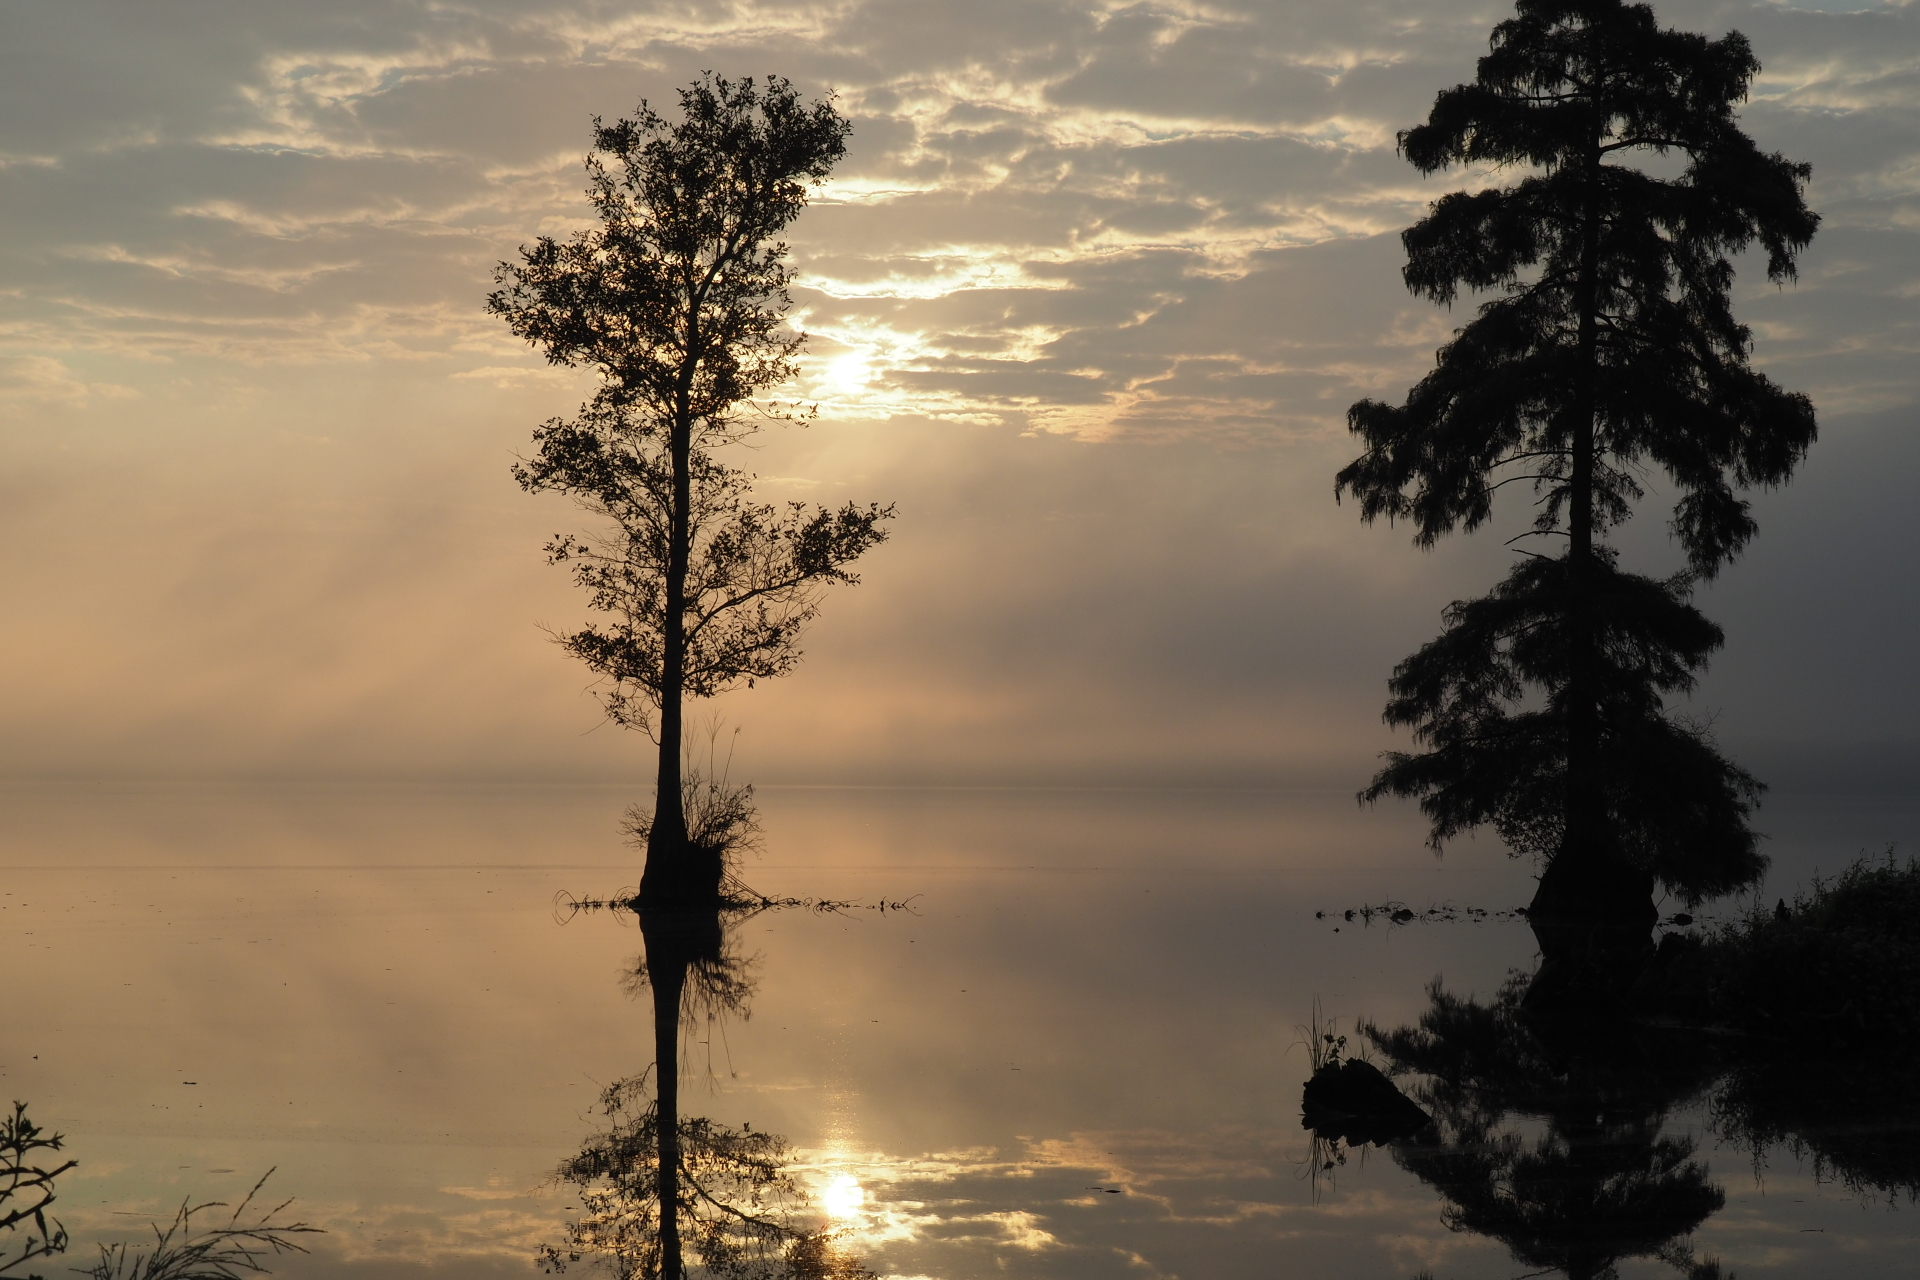 Sunrise on Lake Drummond